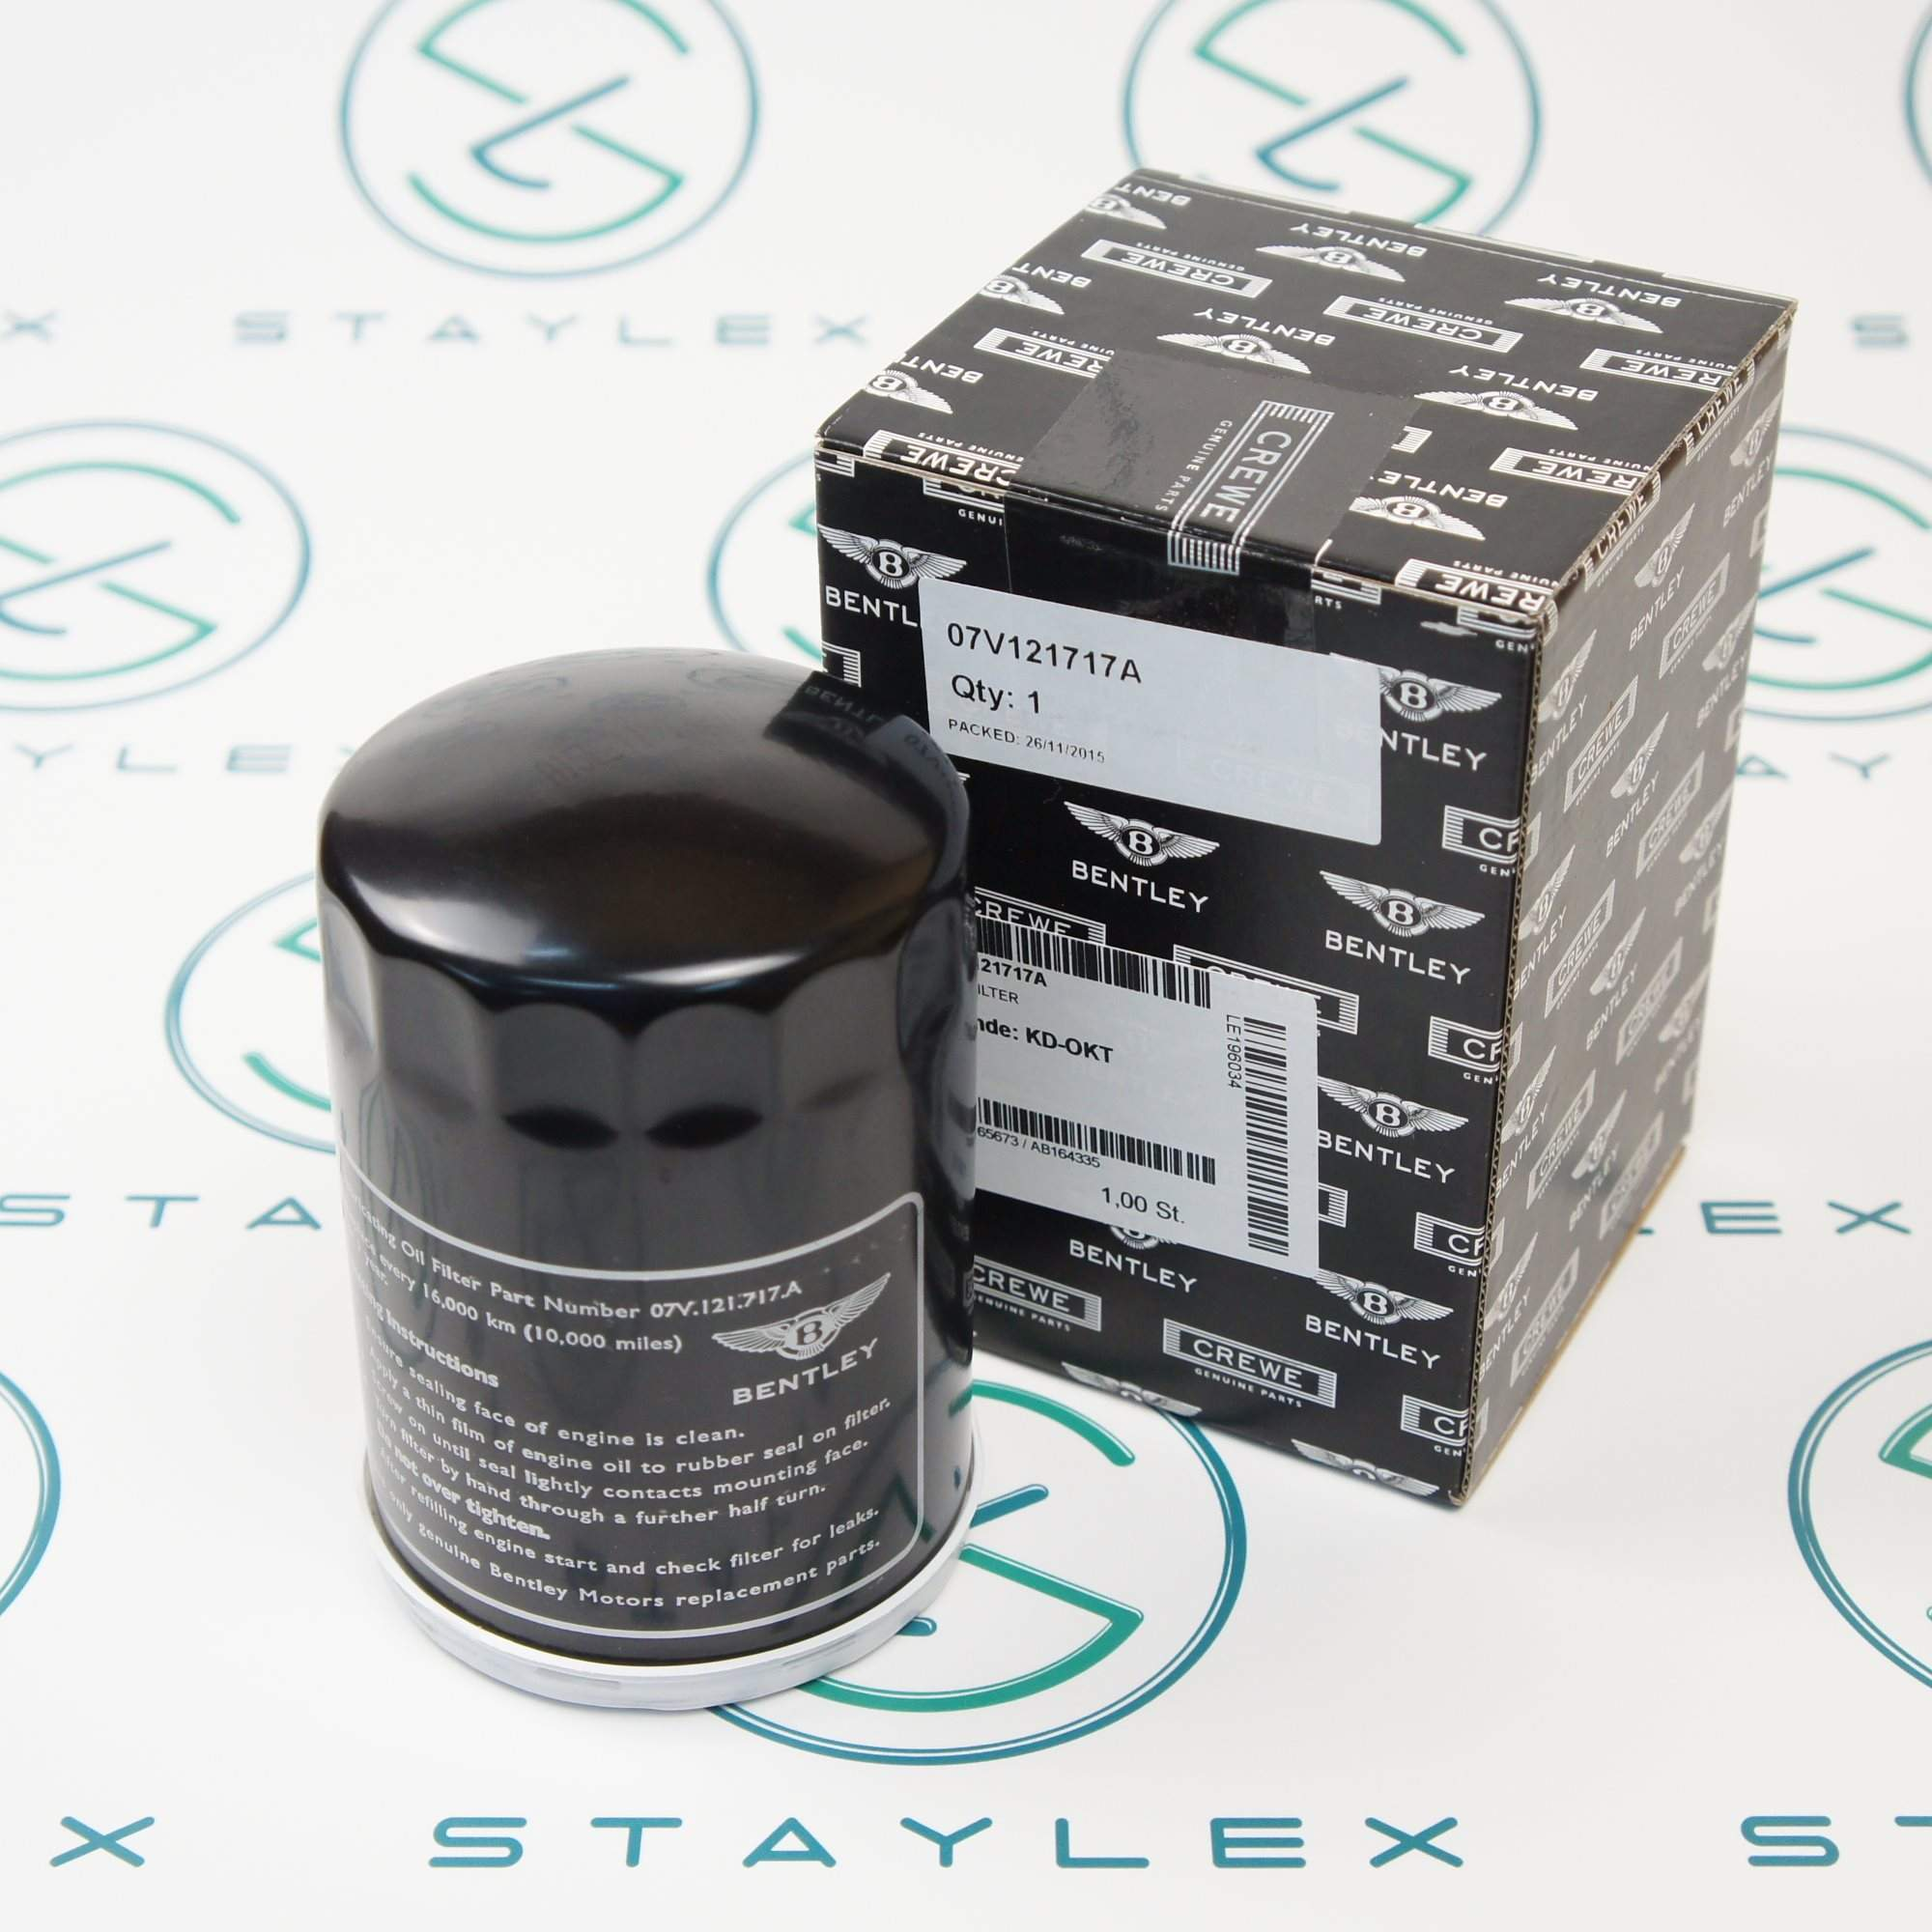 Oil filter Bentley Mulsanne (07V121717A)